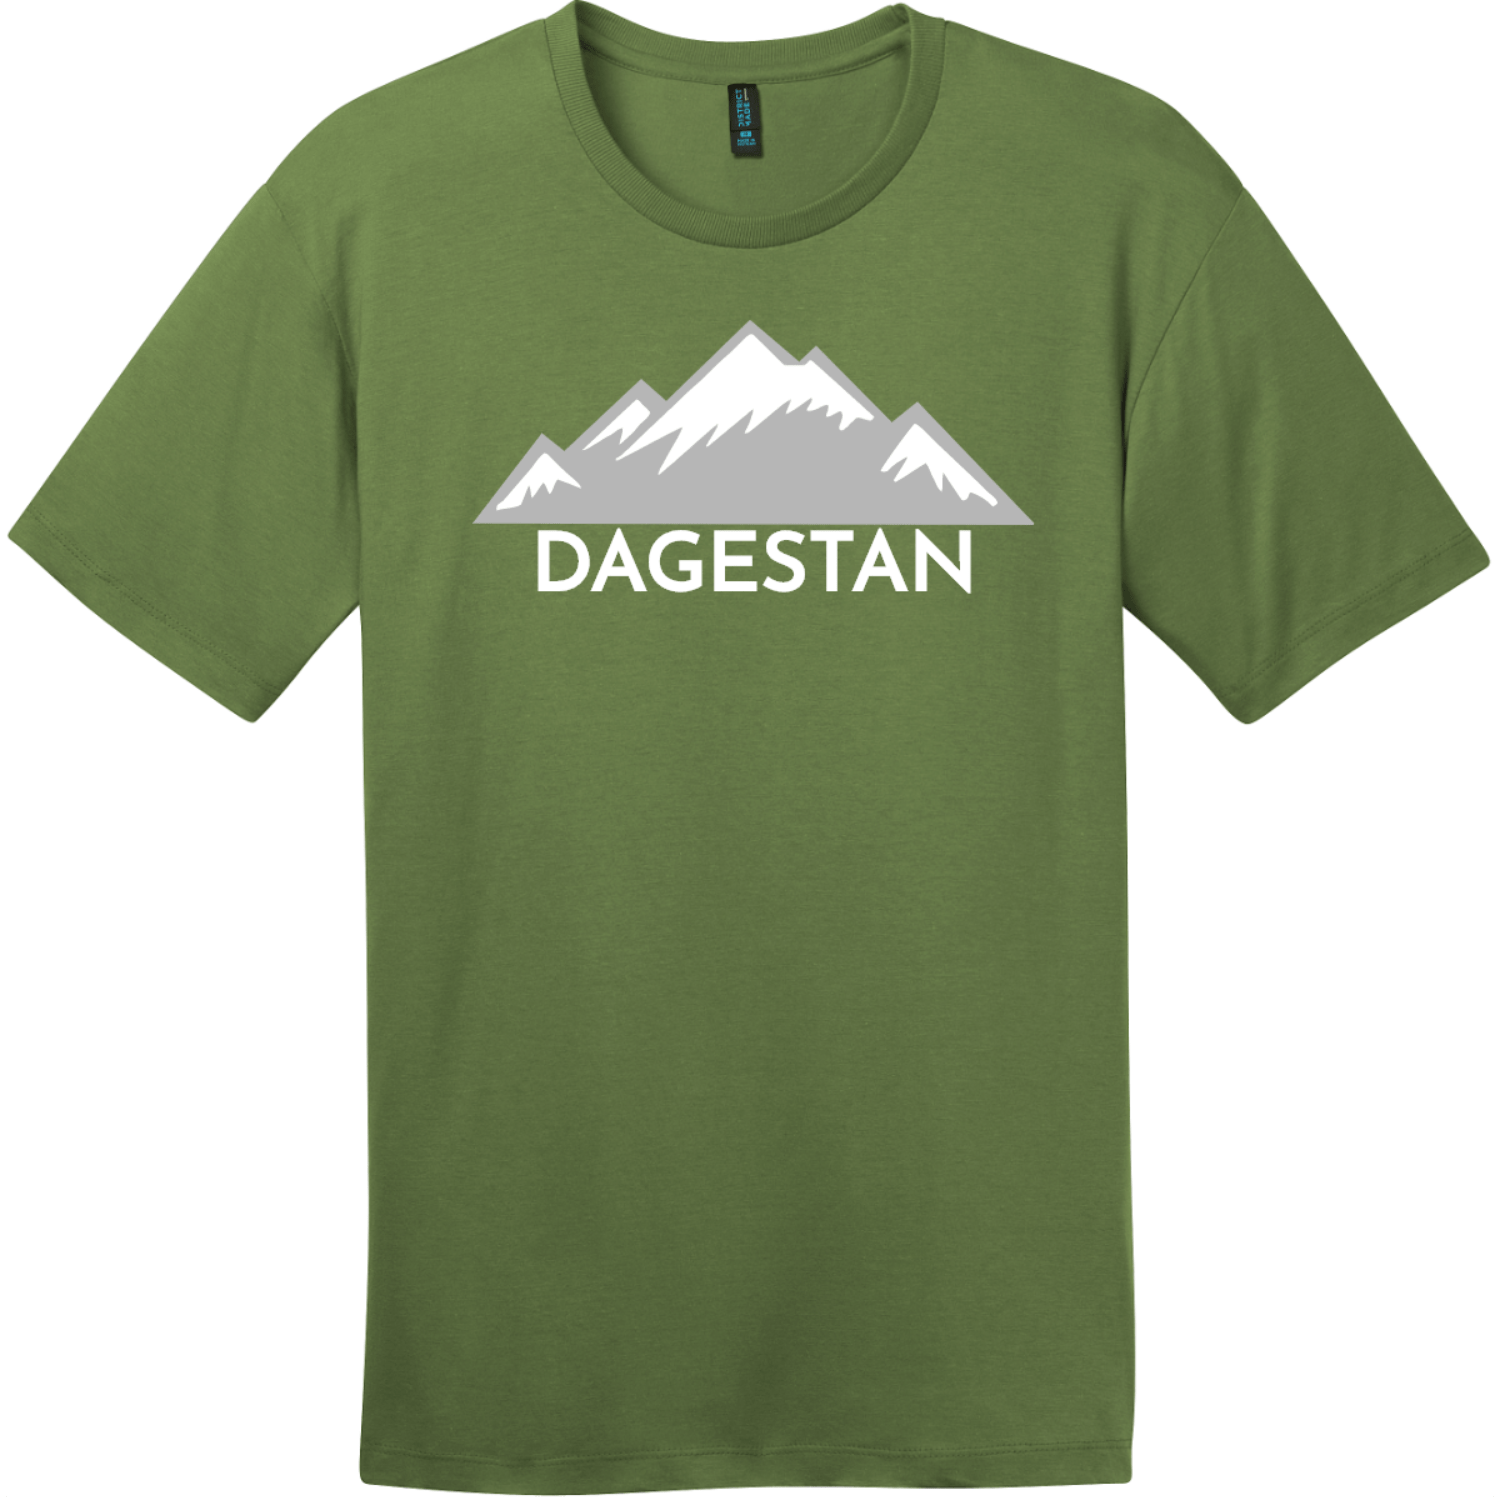 Dagestan Mountain T-Shirt Fresh Fatigue District Perfect Weight Tee DT104